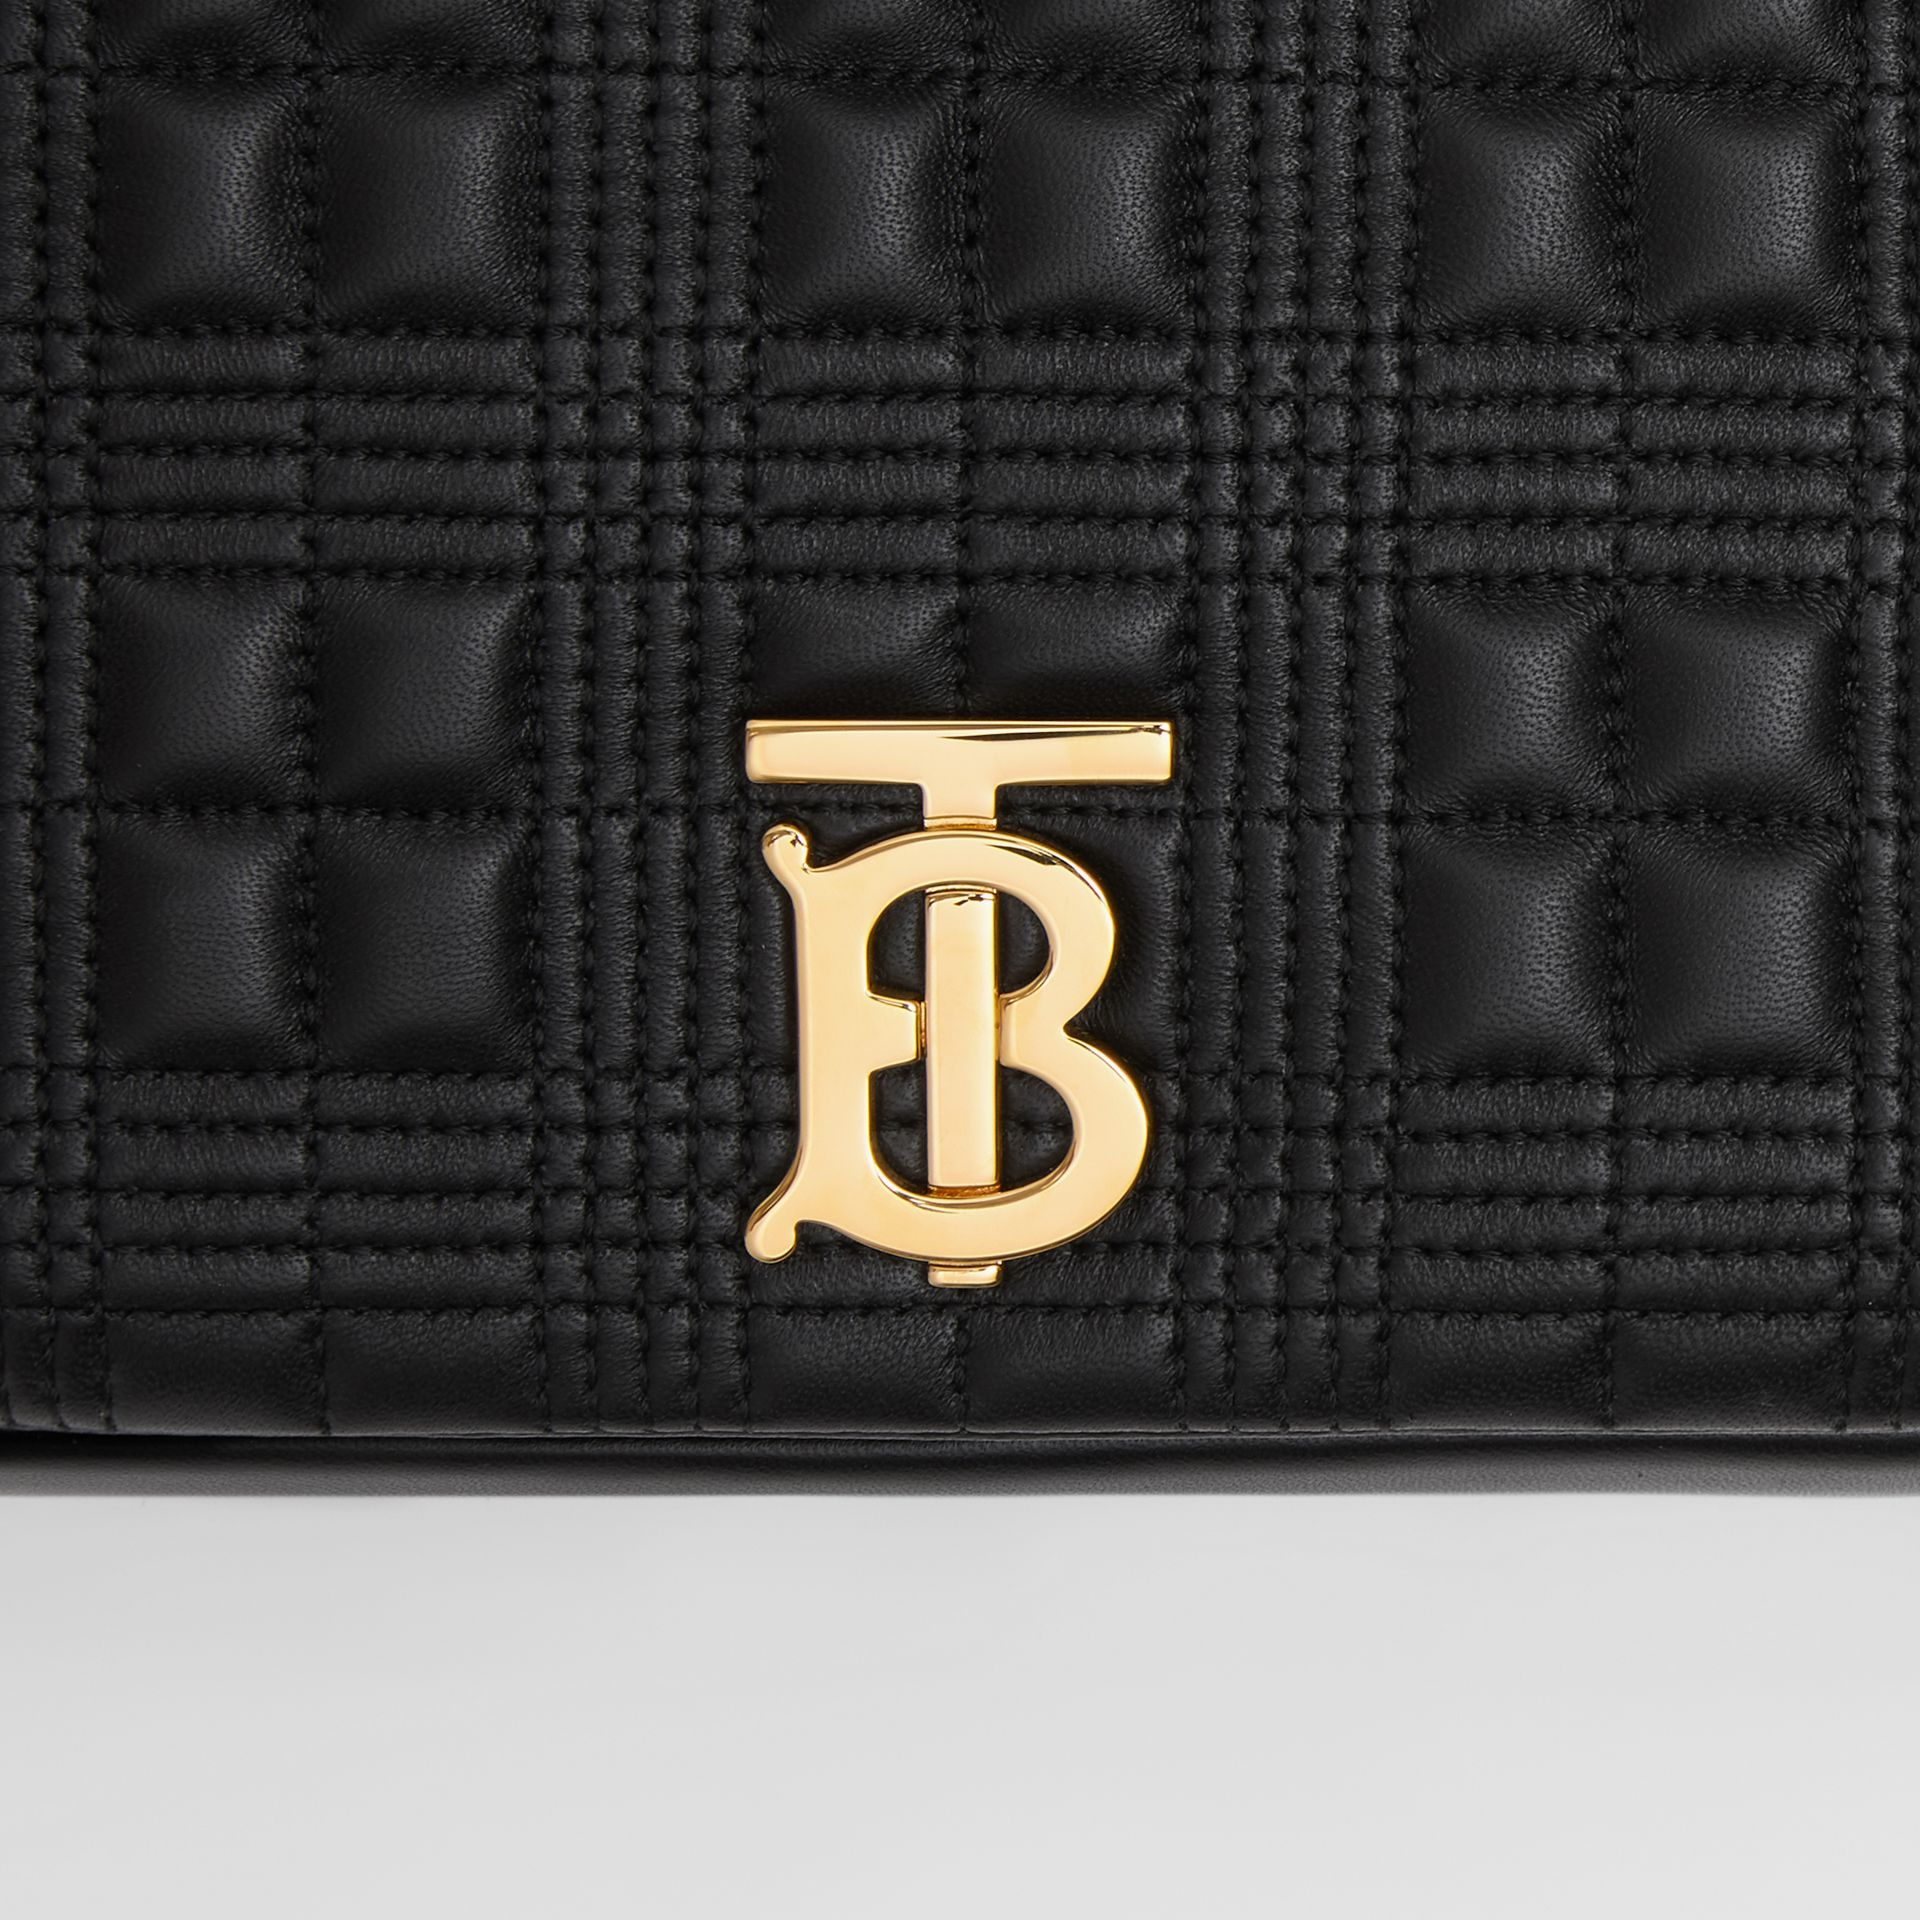 Medium Quilted Lambskin Lola Bag in Black/light Gold - Women | Burberry - gallery image 1